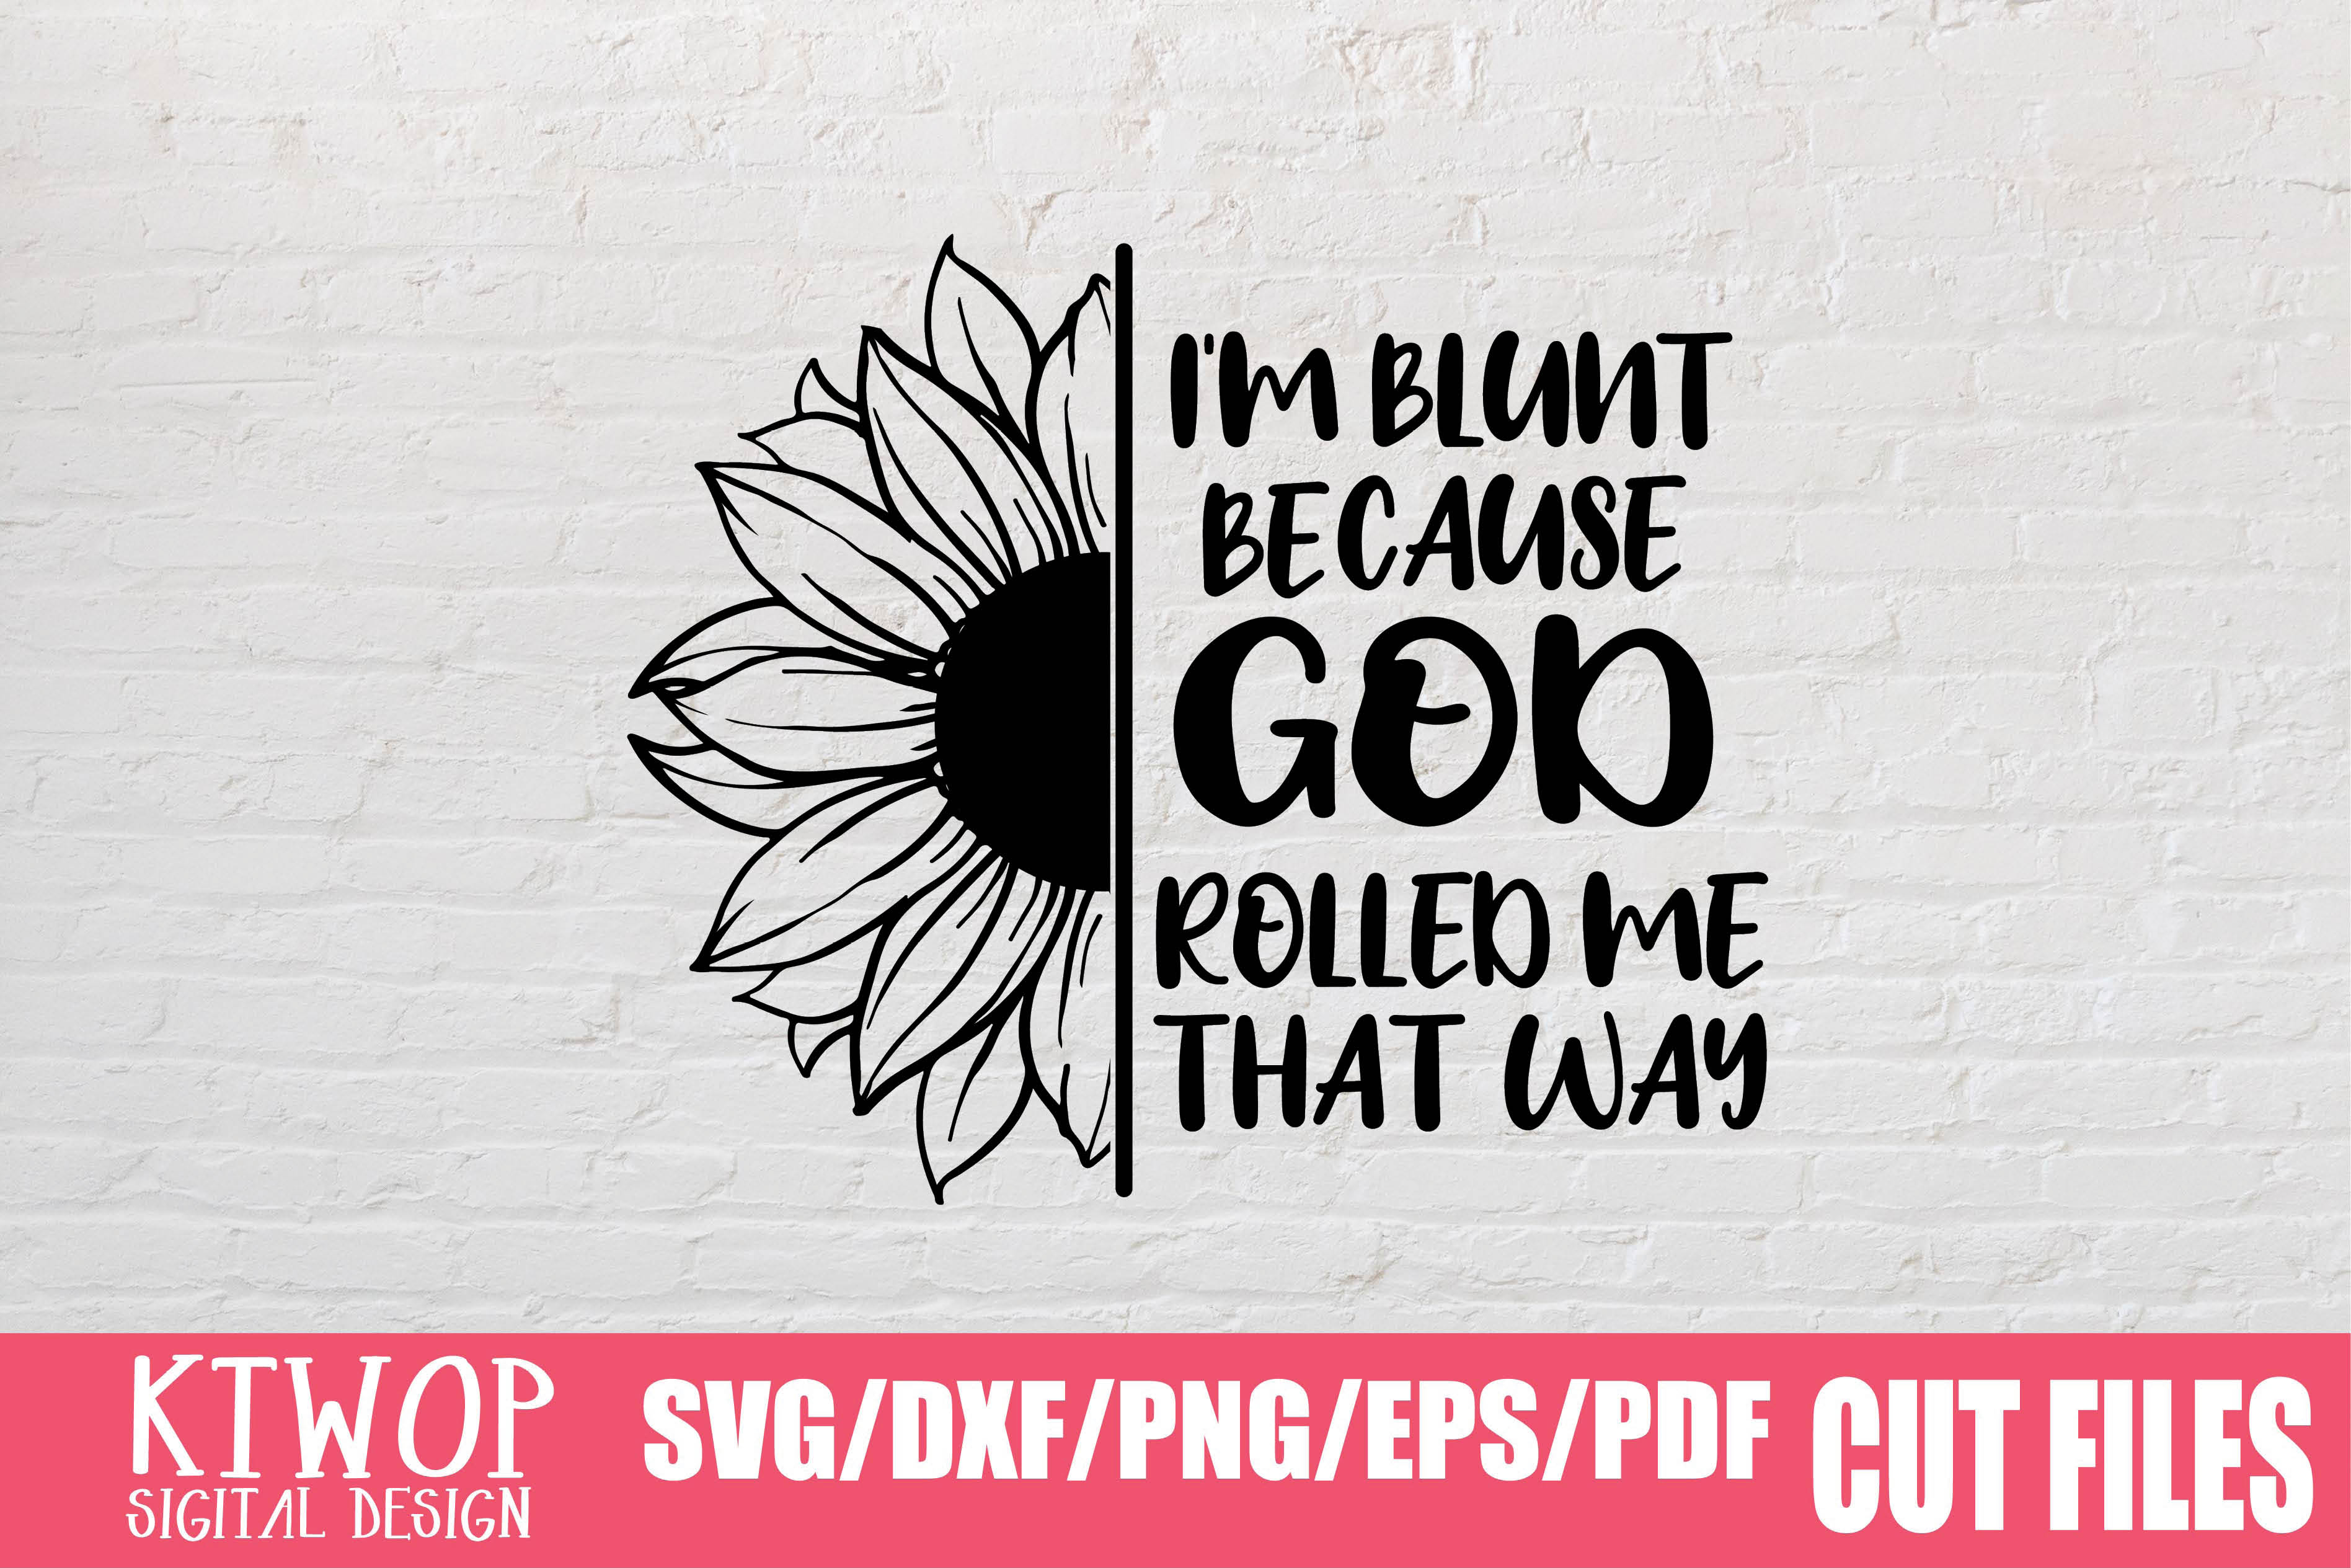 Download Free I M Blunt Because God Rolled Me That Way Graphic By Ktwop for Cricut Explore, Silhouette and other cutting machines.